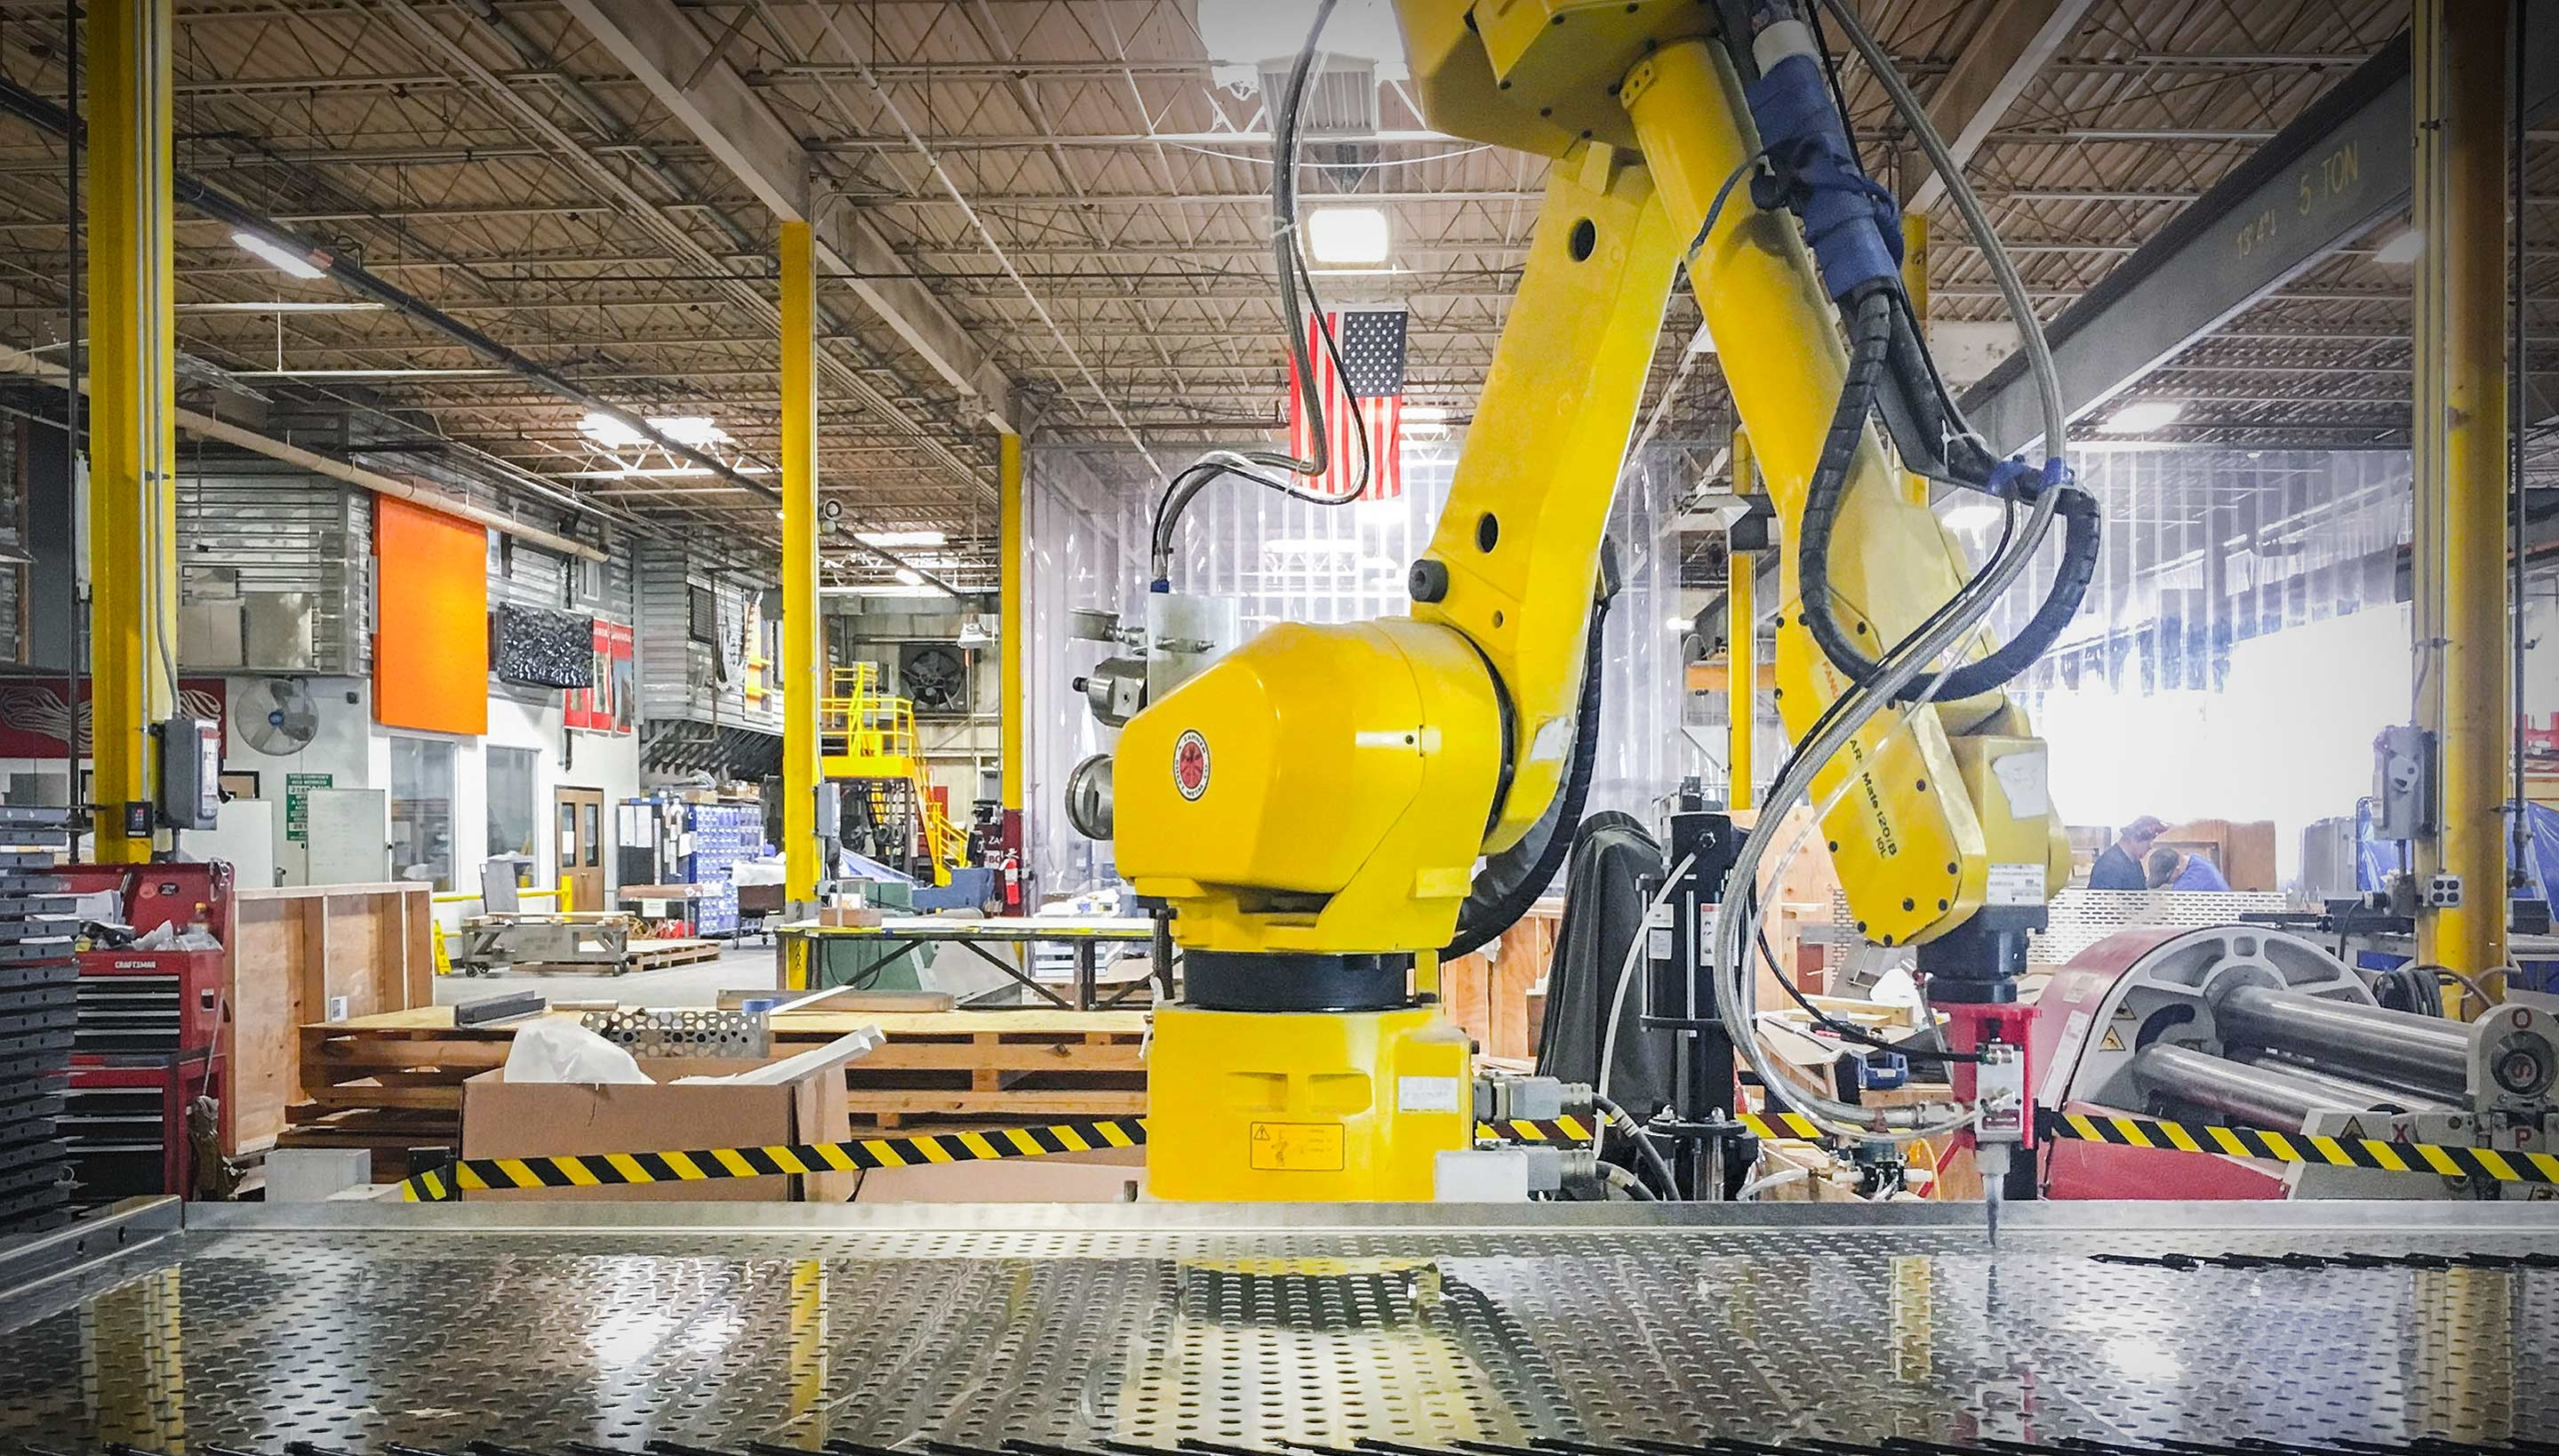 Zahner shop robotic arm places adhesive on perforated metal panels.